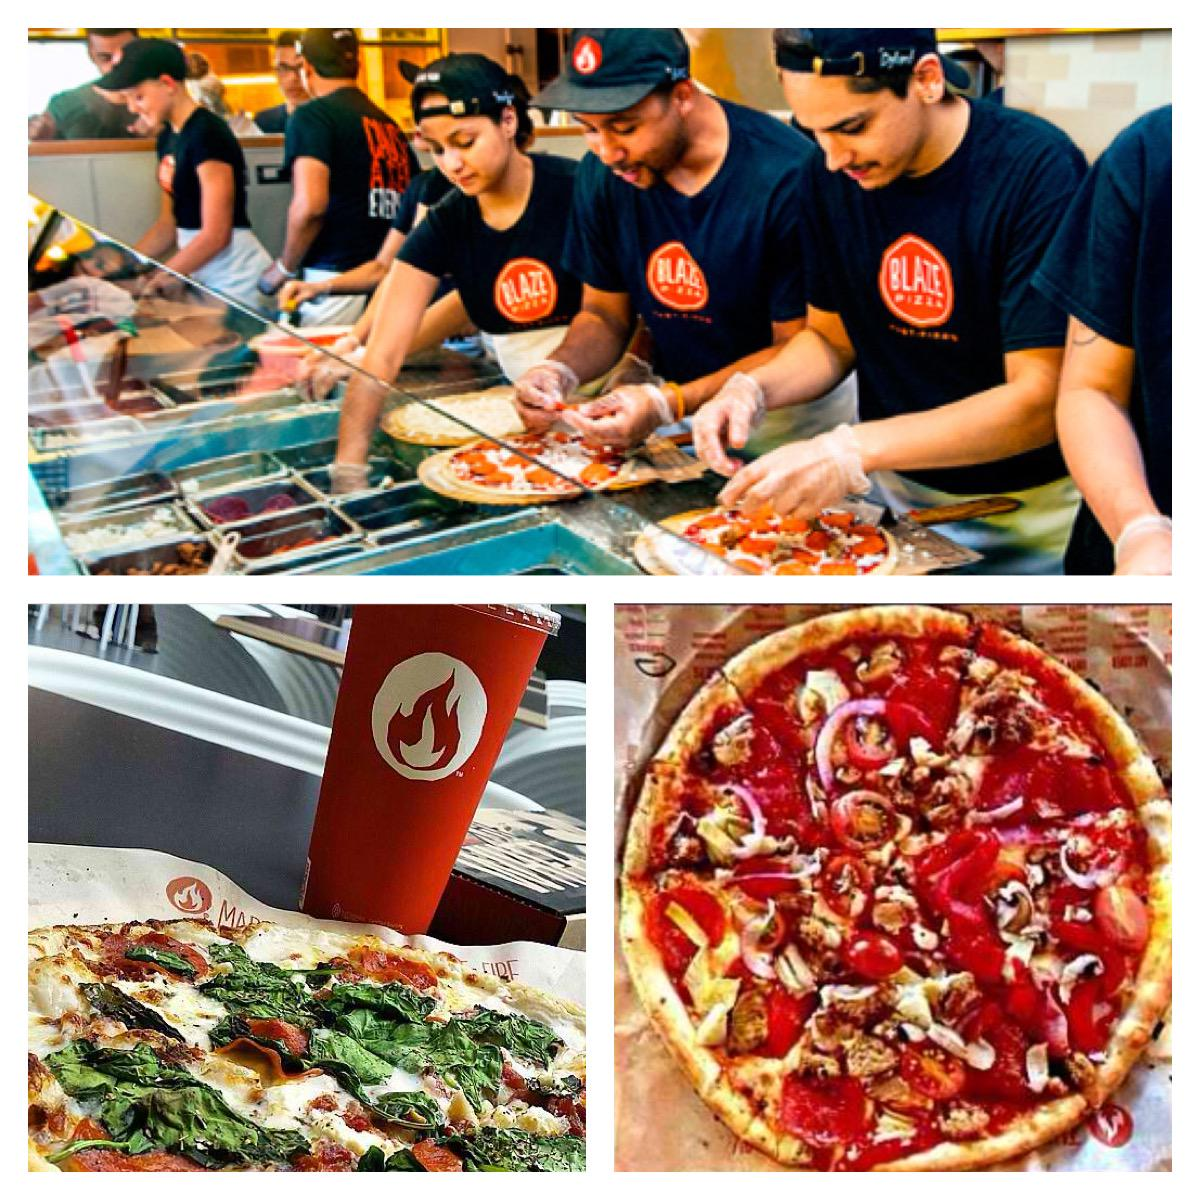 On 12/3 from 10am-9:30pm, receive FREE pizza at our @BlazePizza location if you show that you follow Blaze on Twitter http://t.co/x0sZVSb73f